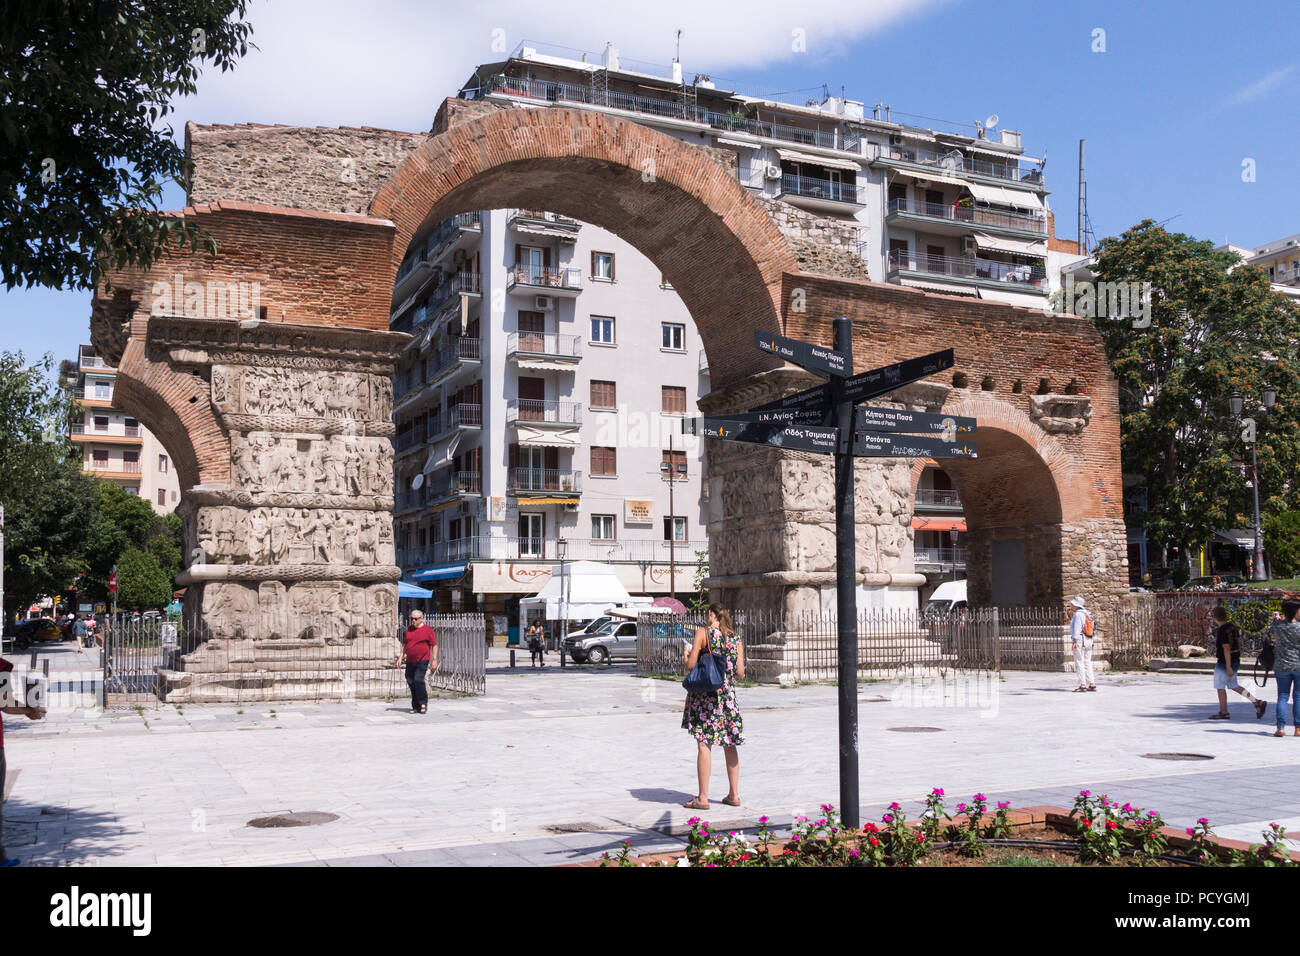 The iconic Arch of Galerius (Kamara) is perhaps the most distinctive roman structure in the city of Thessaloniki and a popular tourist attraction - Stock Image